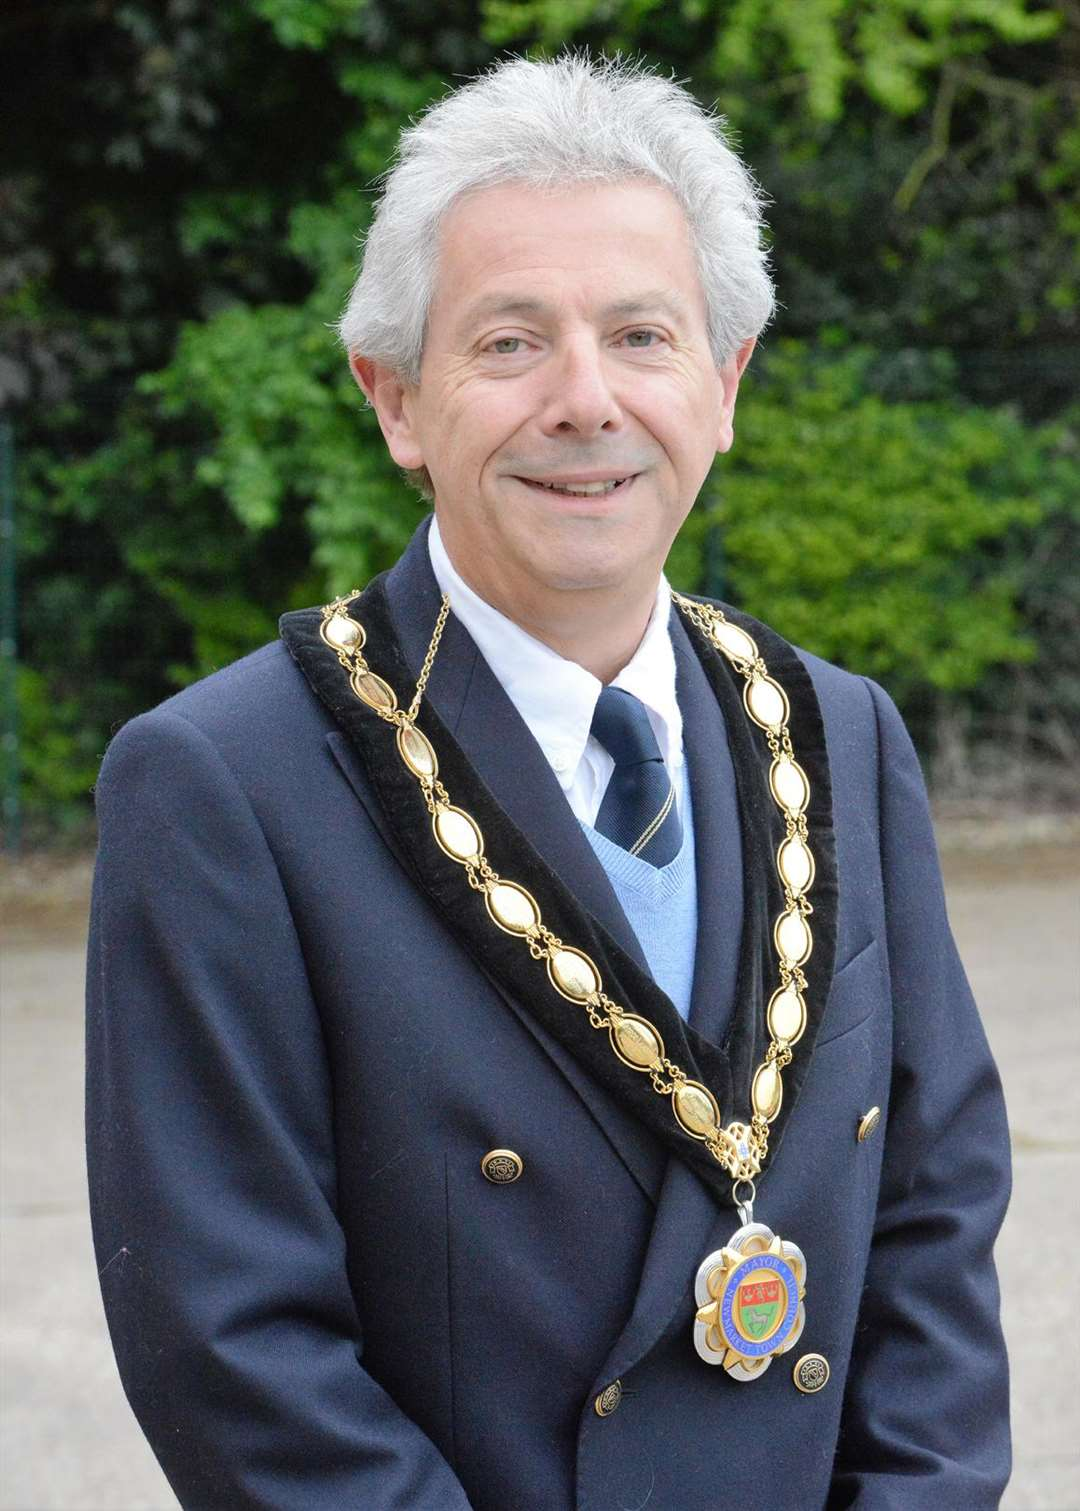 Newmarket mayor 2016/17 Andy Drummond. (4459267)